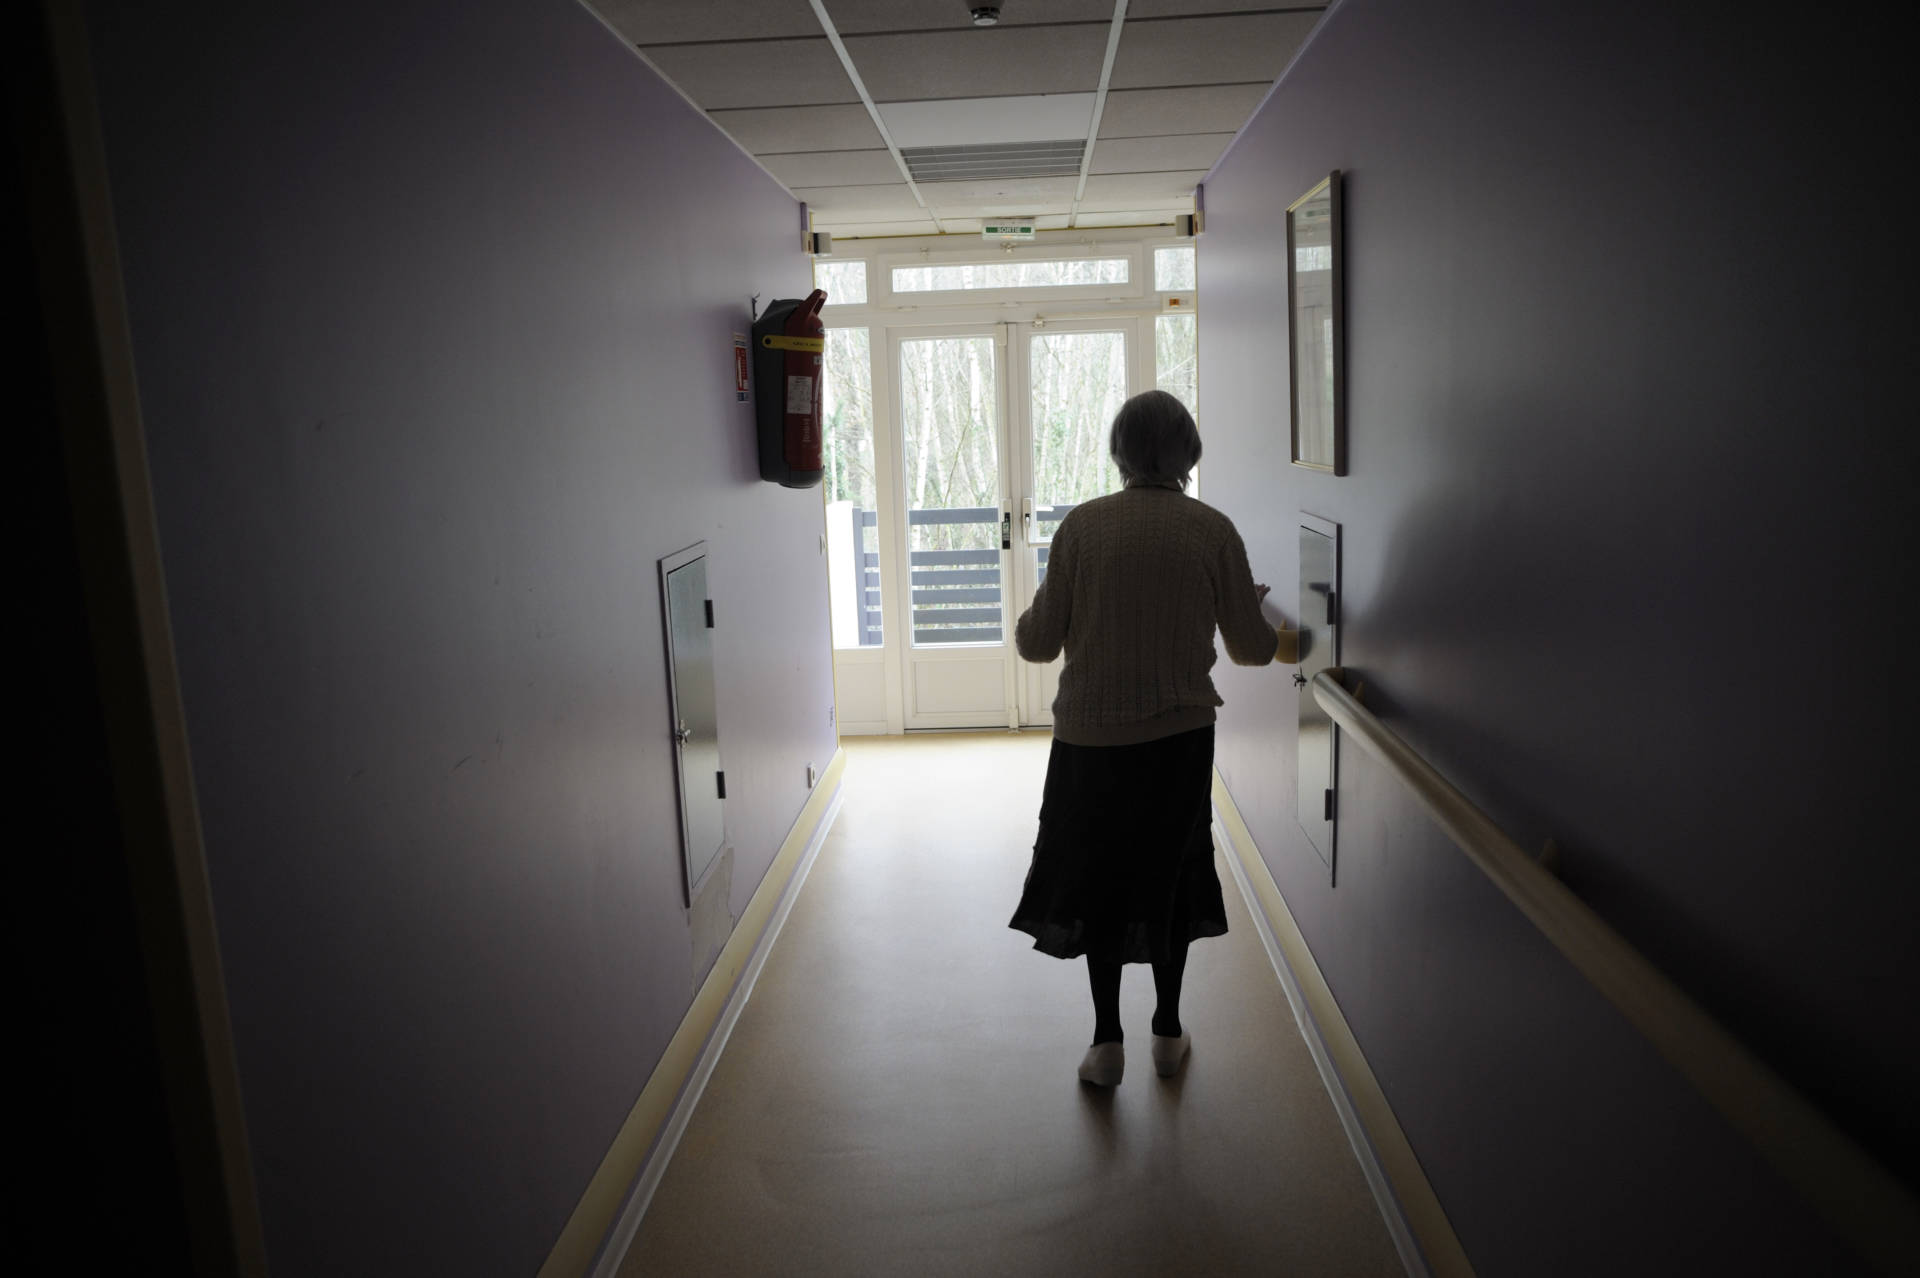 A woman, suffering from Alzheimer's disease, walks in a corridor in a retirement house.